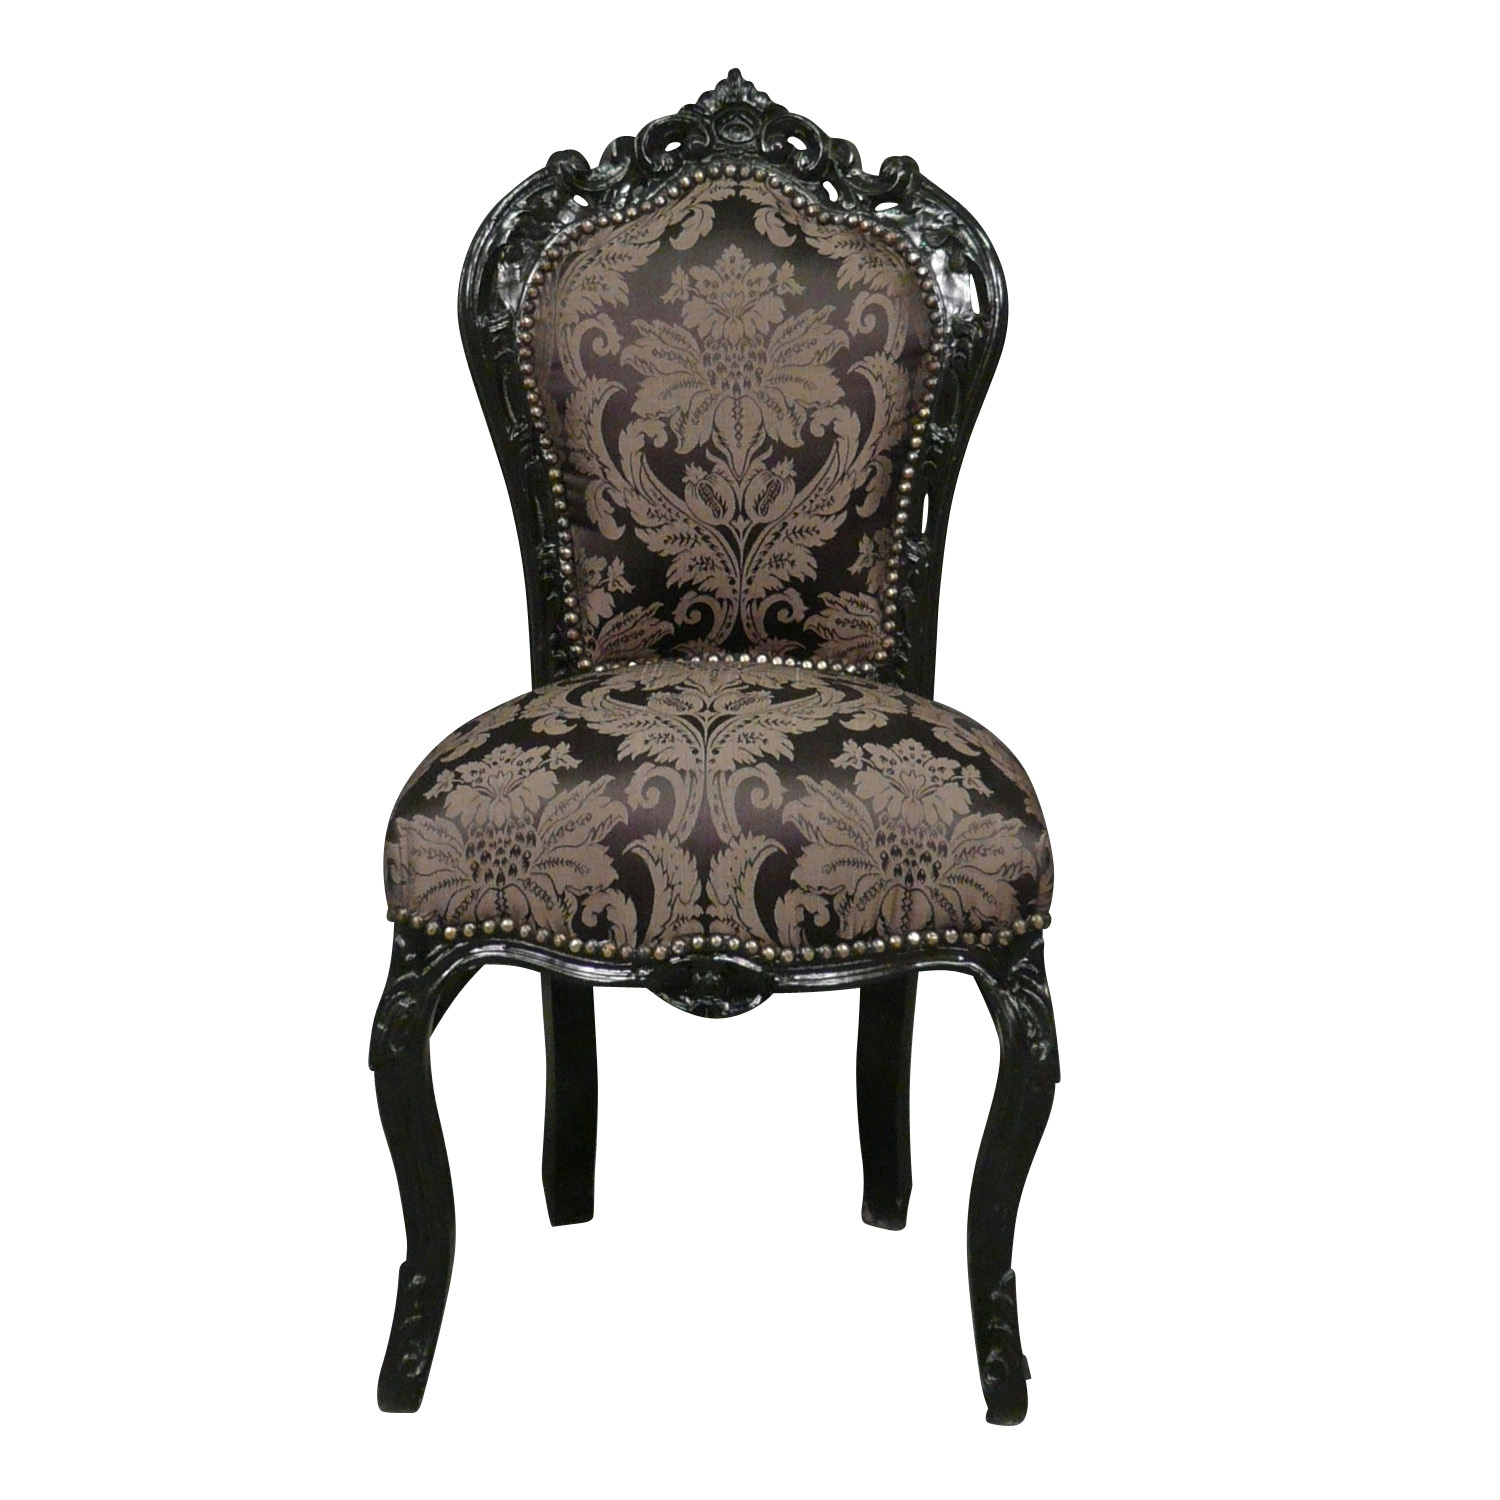 Baroque chair gallery armchair - Chaise style baroque ...